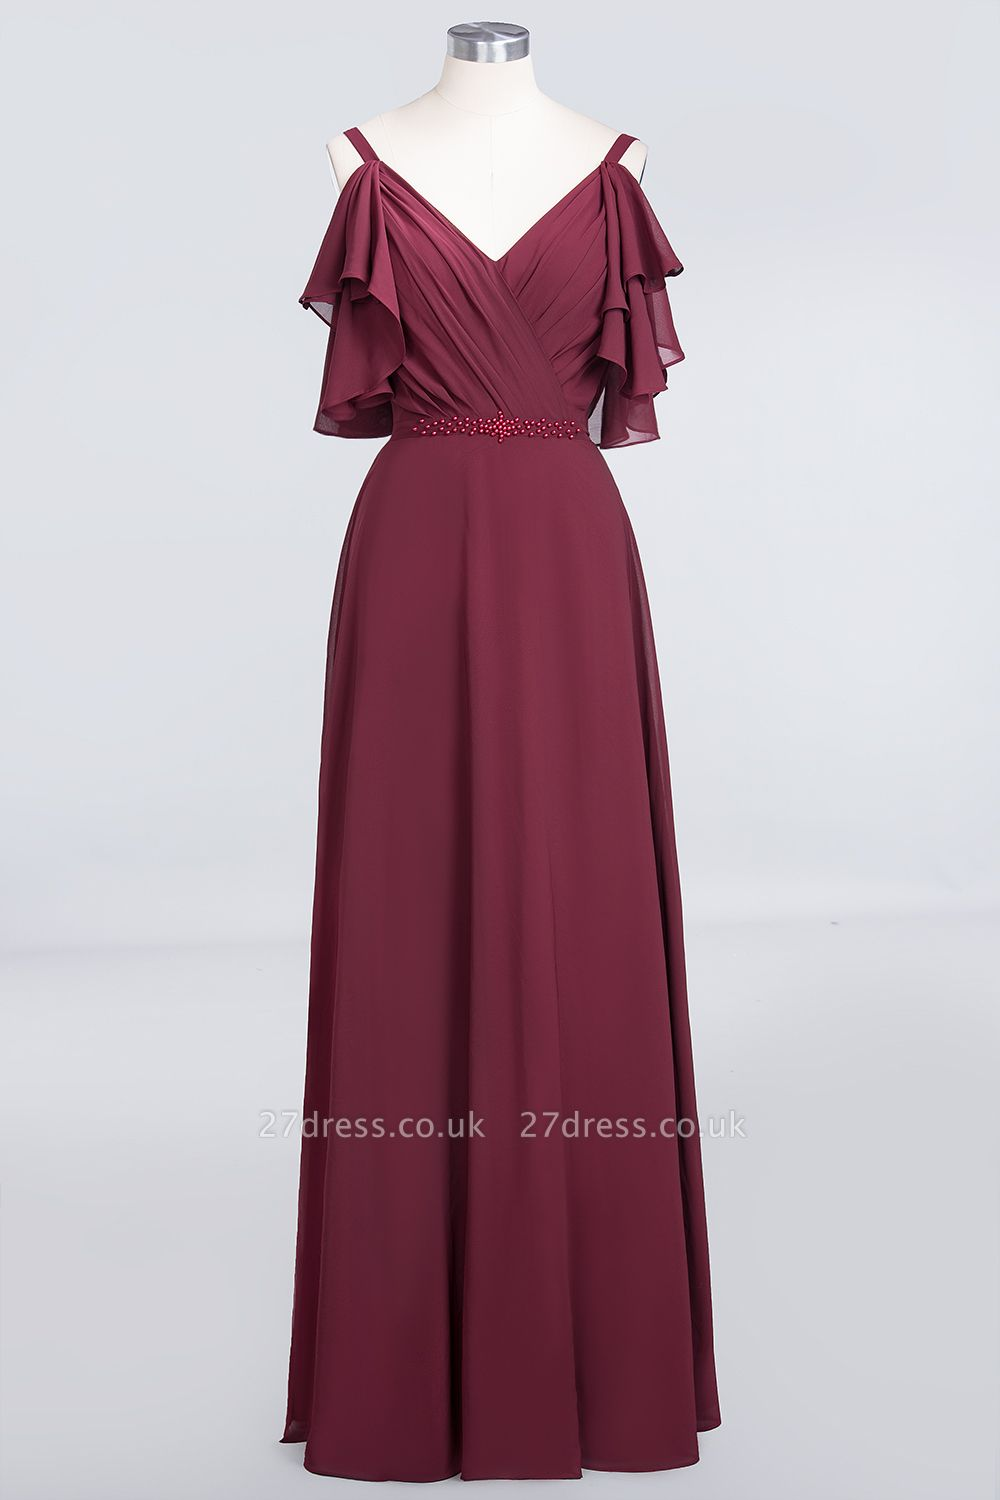 Sexy A-line Flowy Alluring V-neck Straps Sleeveless Ruffles Floor-Length Bridesmaid Dress UK UK with Pearls